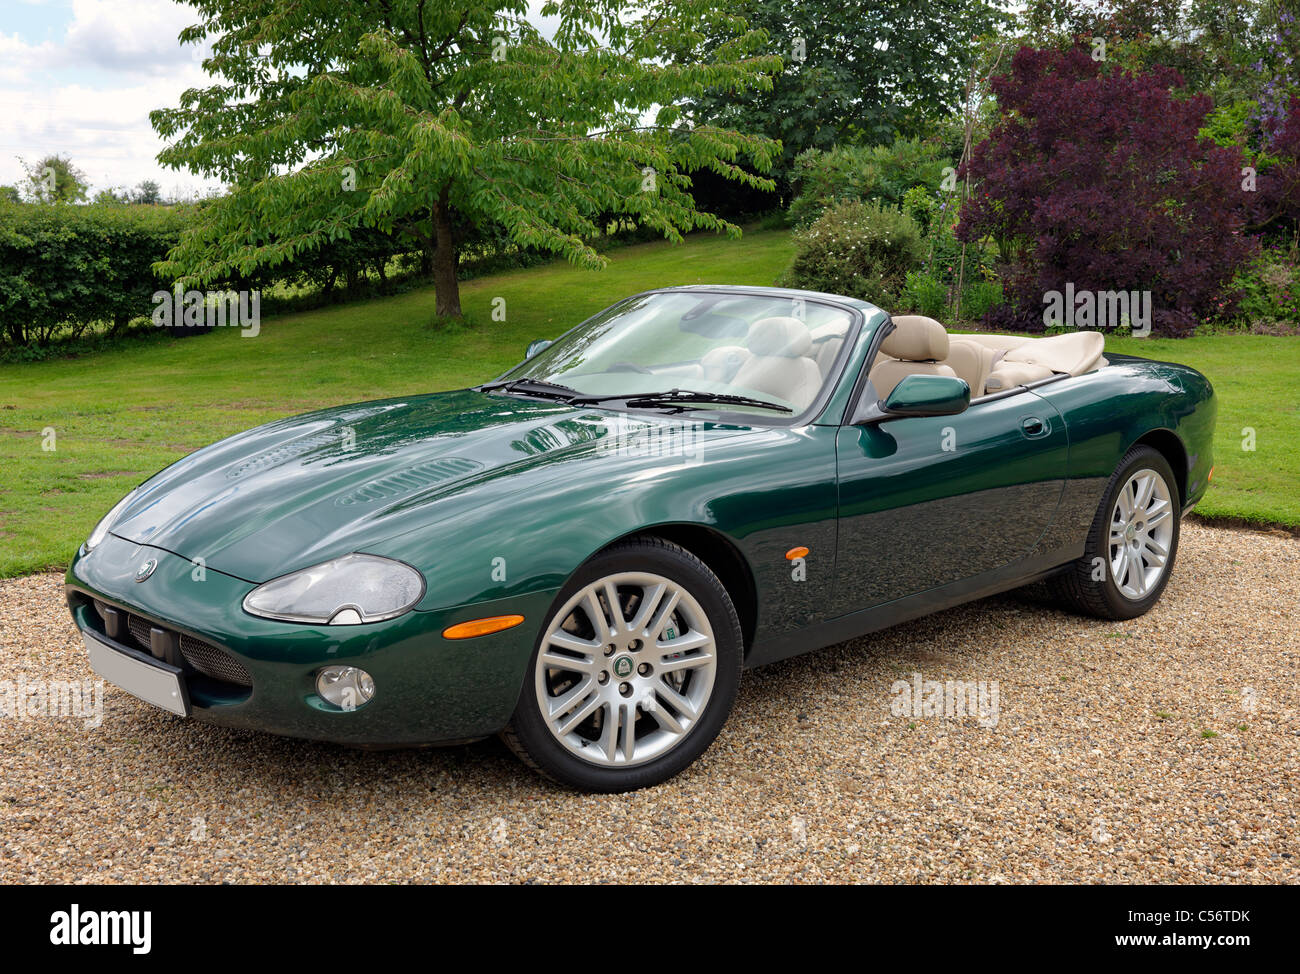 Jaguar XKR Sports Convertible, 2003 Model Year. Number Plate Anonymised.